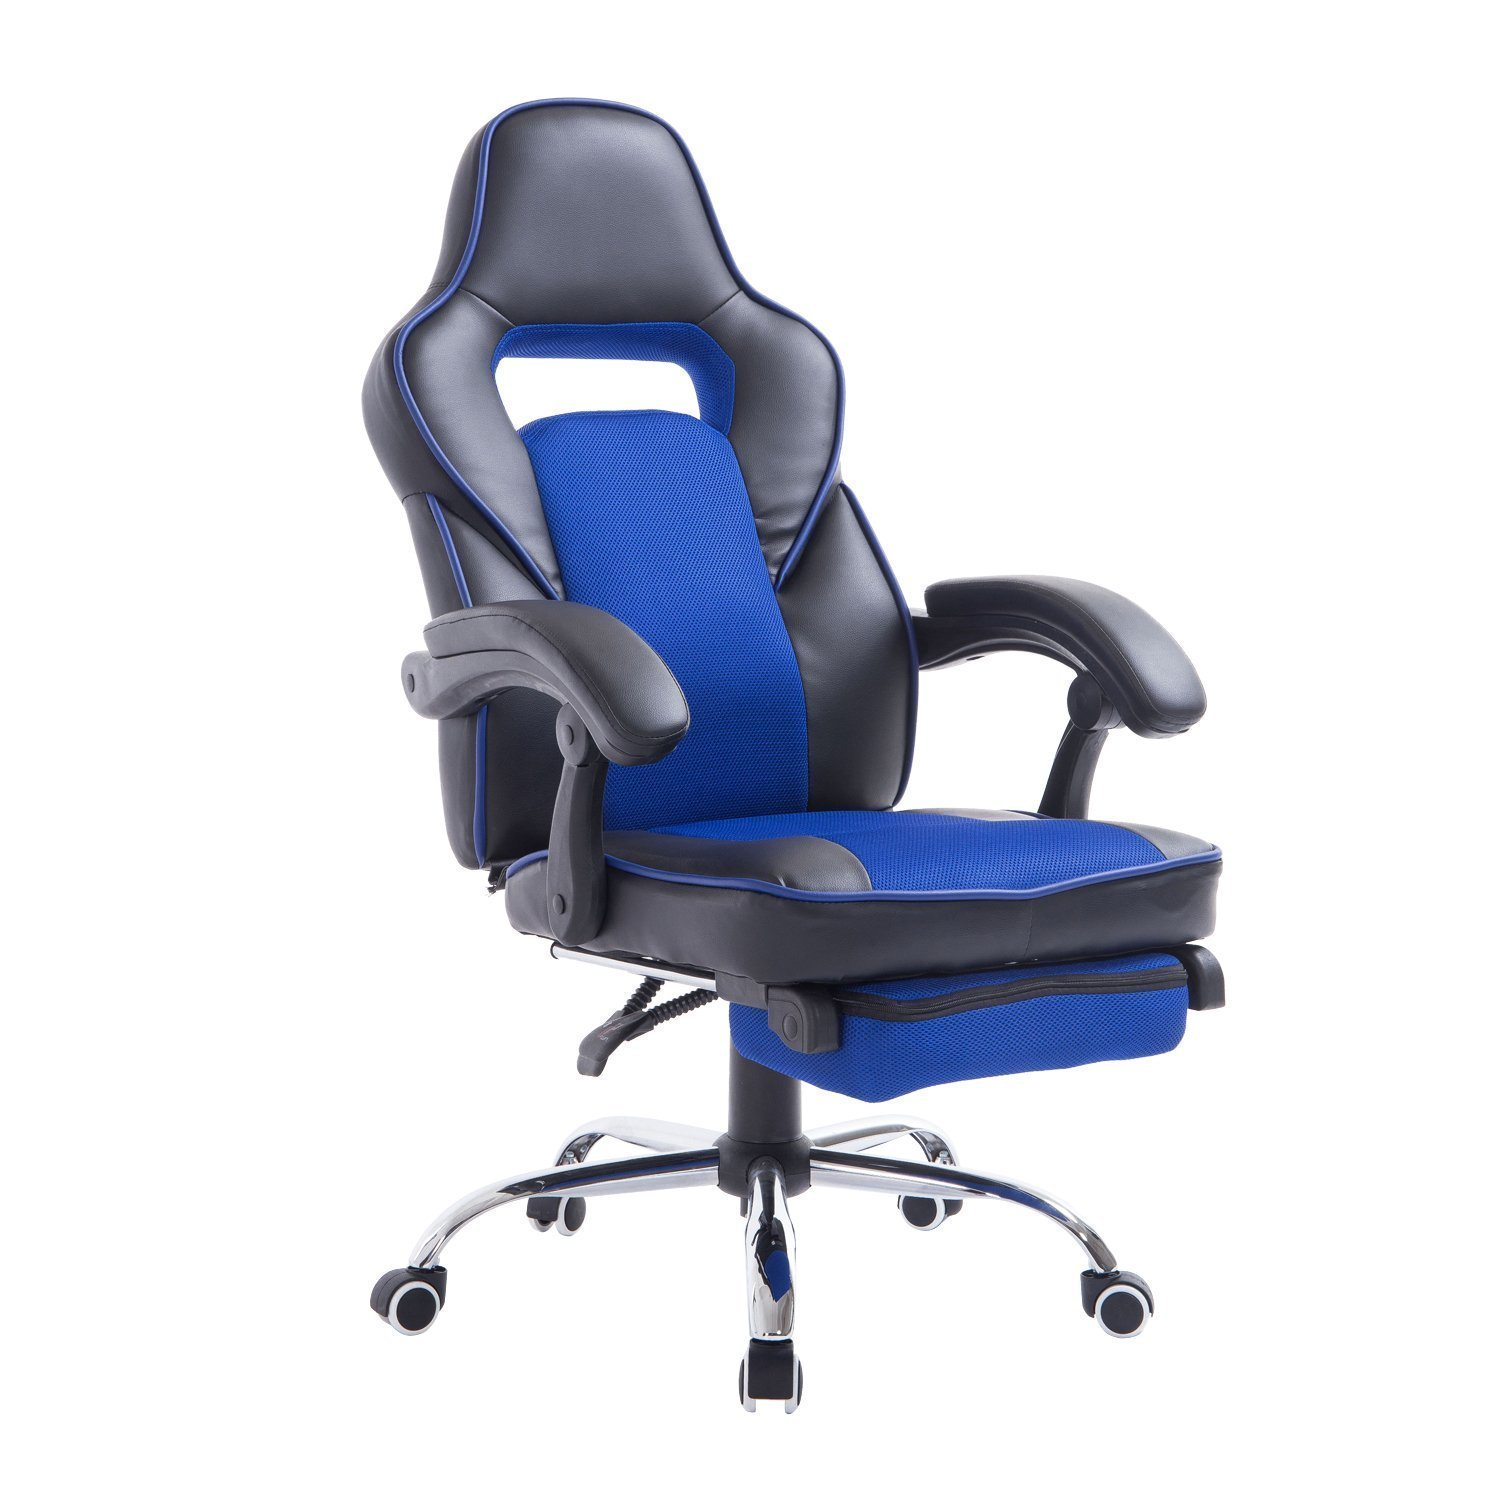 Swell Top 15 Reclining Office Chairs Reviewed Updated Guide For 2019 Gmtry Best Dining Table And Chair Ideas Images Gmtryco